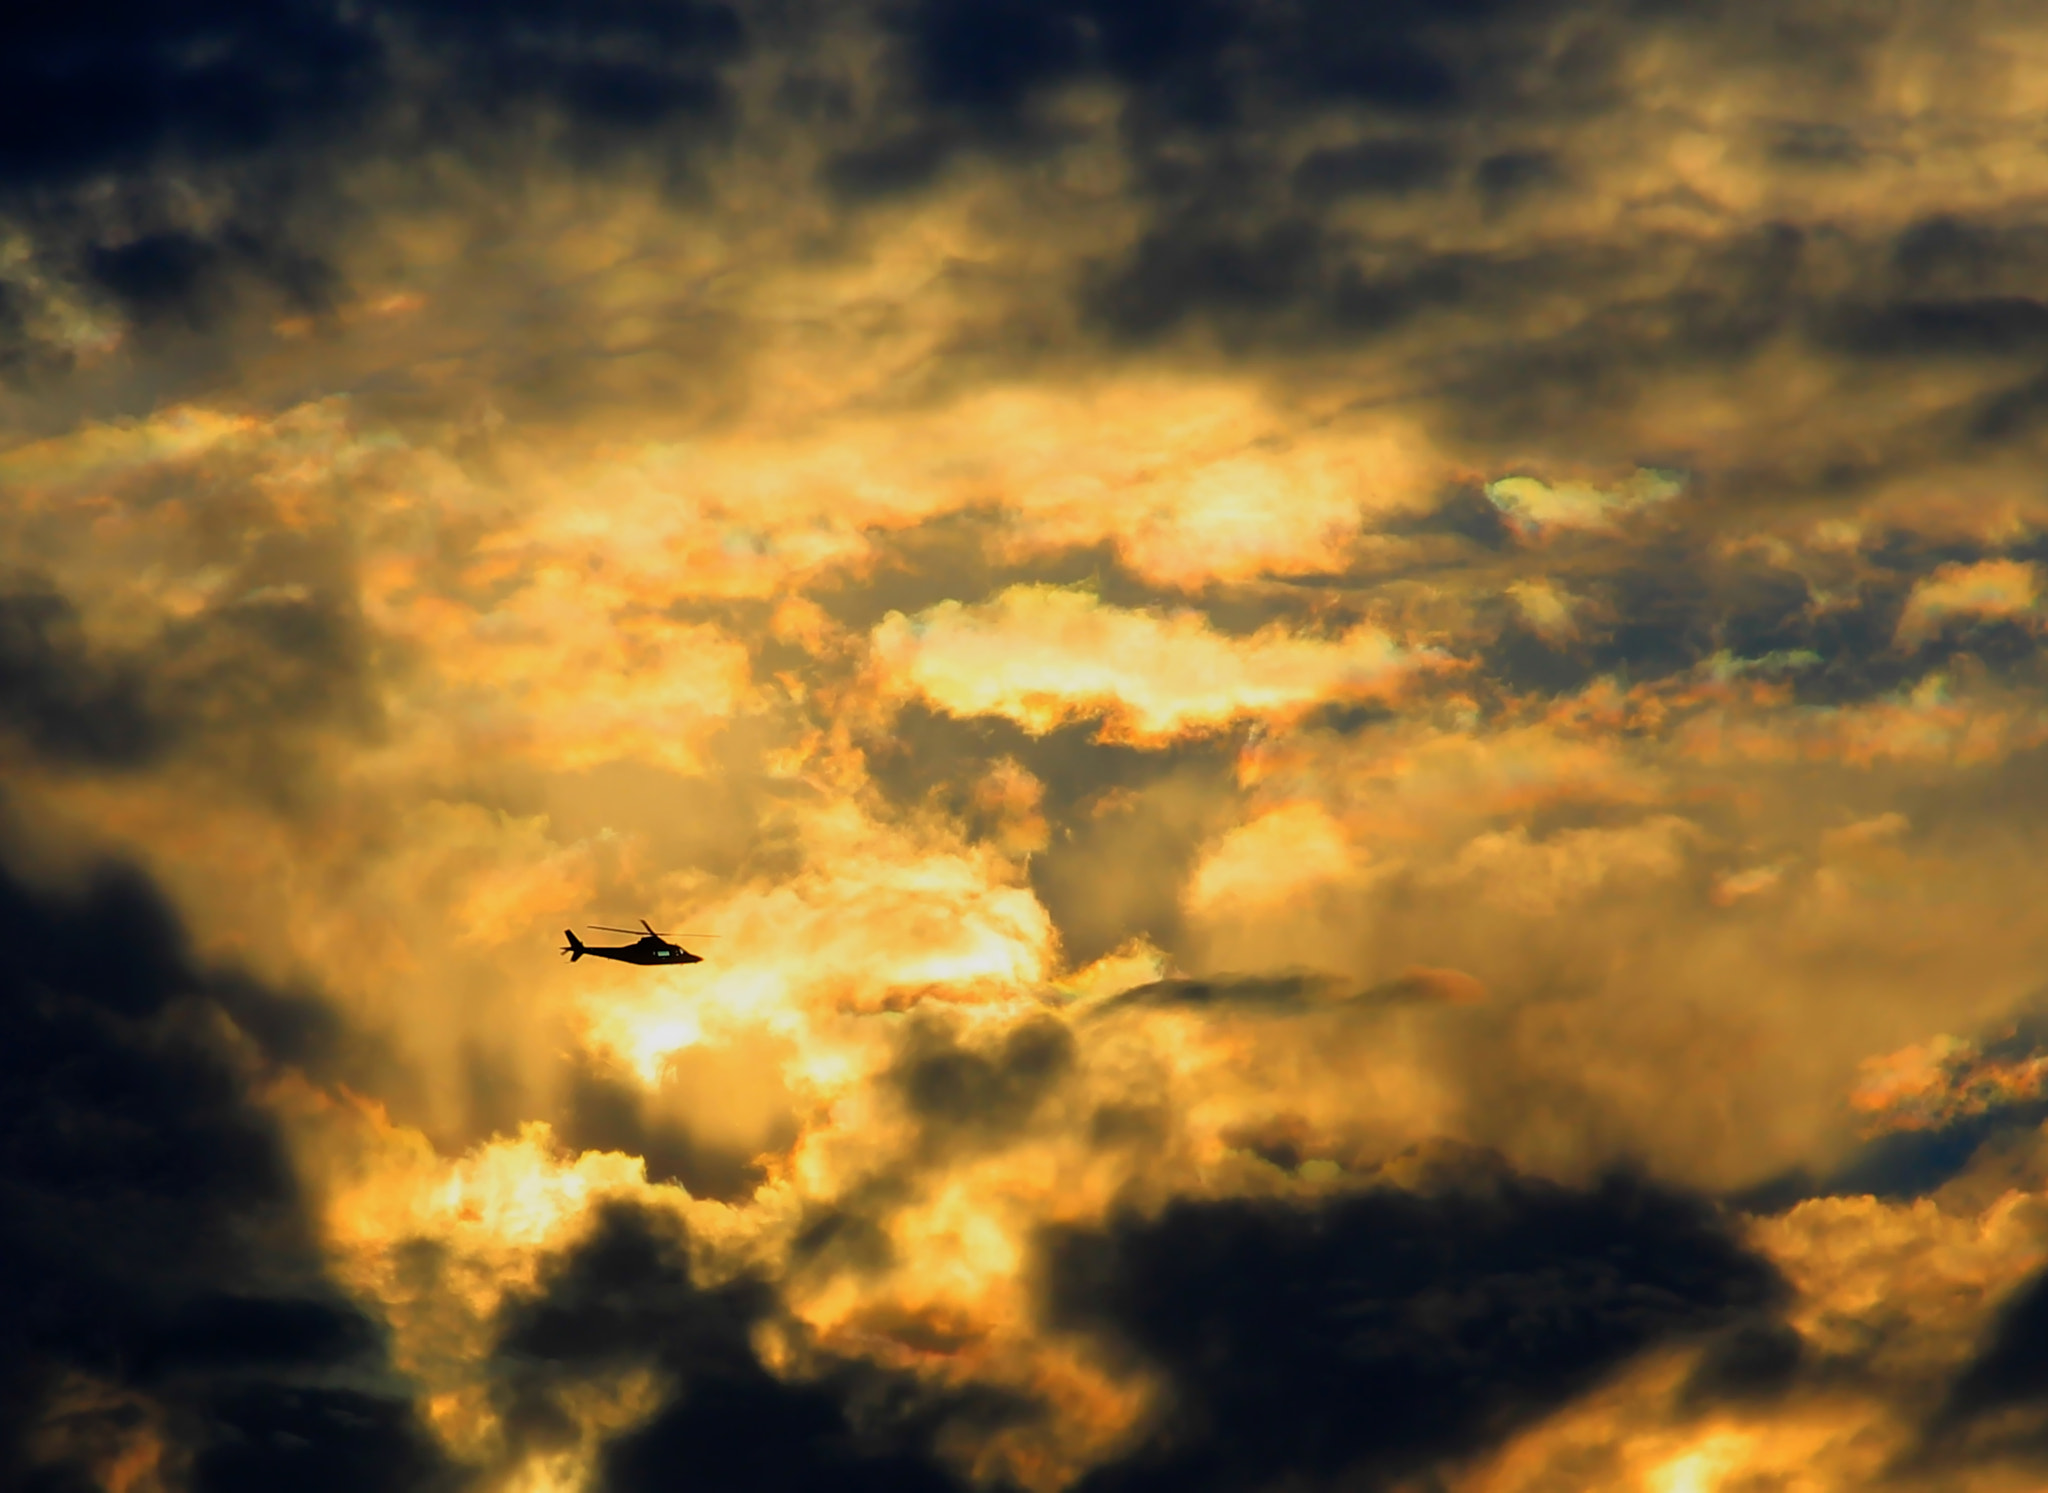 Photograph Sunset Helicopter by Georgina Gomez on 500px